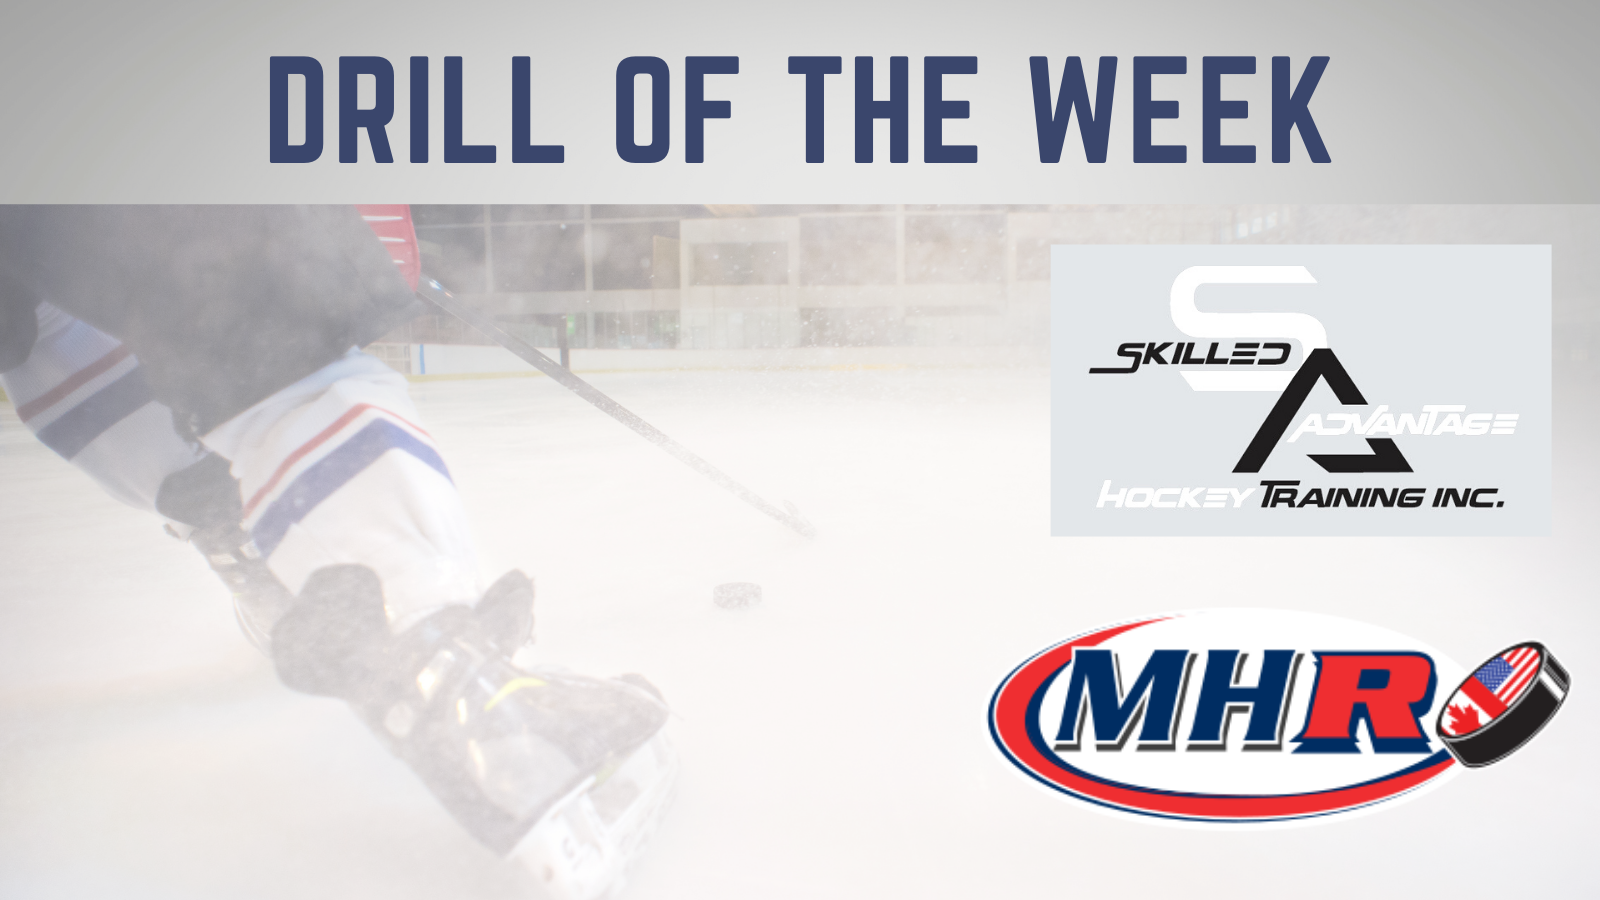 Drill of the Week 4 Powered by Skilled Advantage Hockey